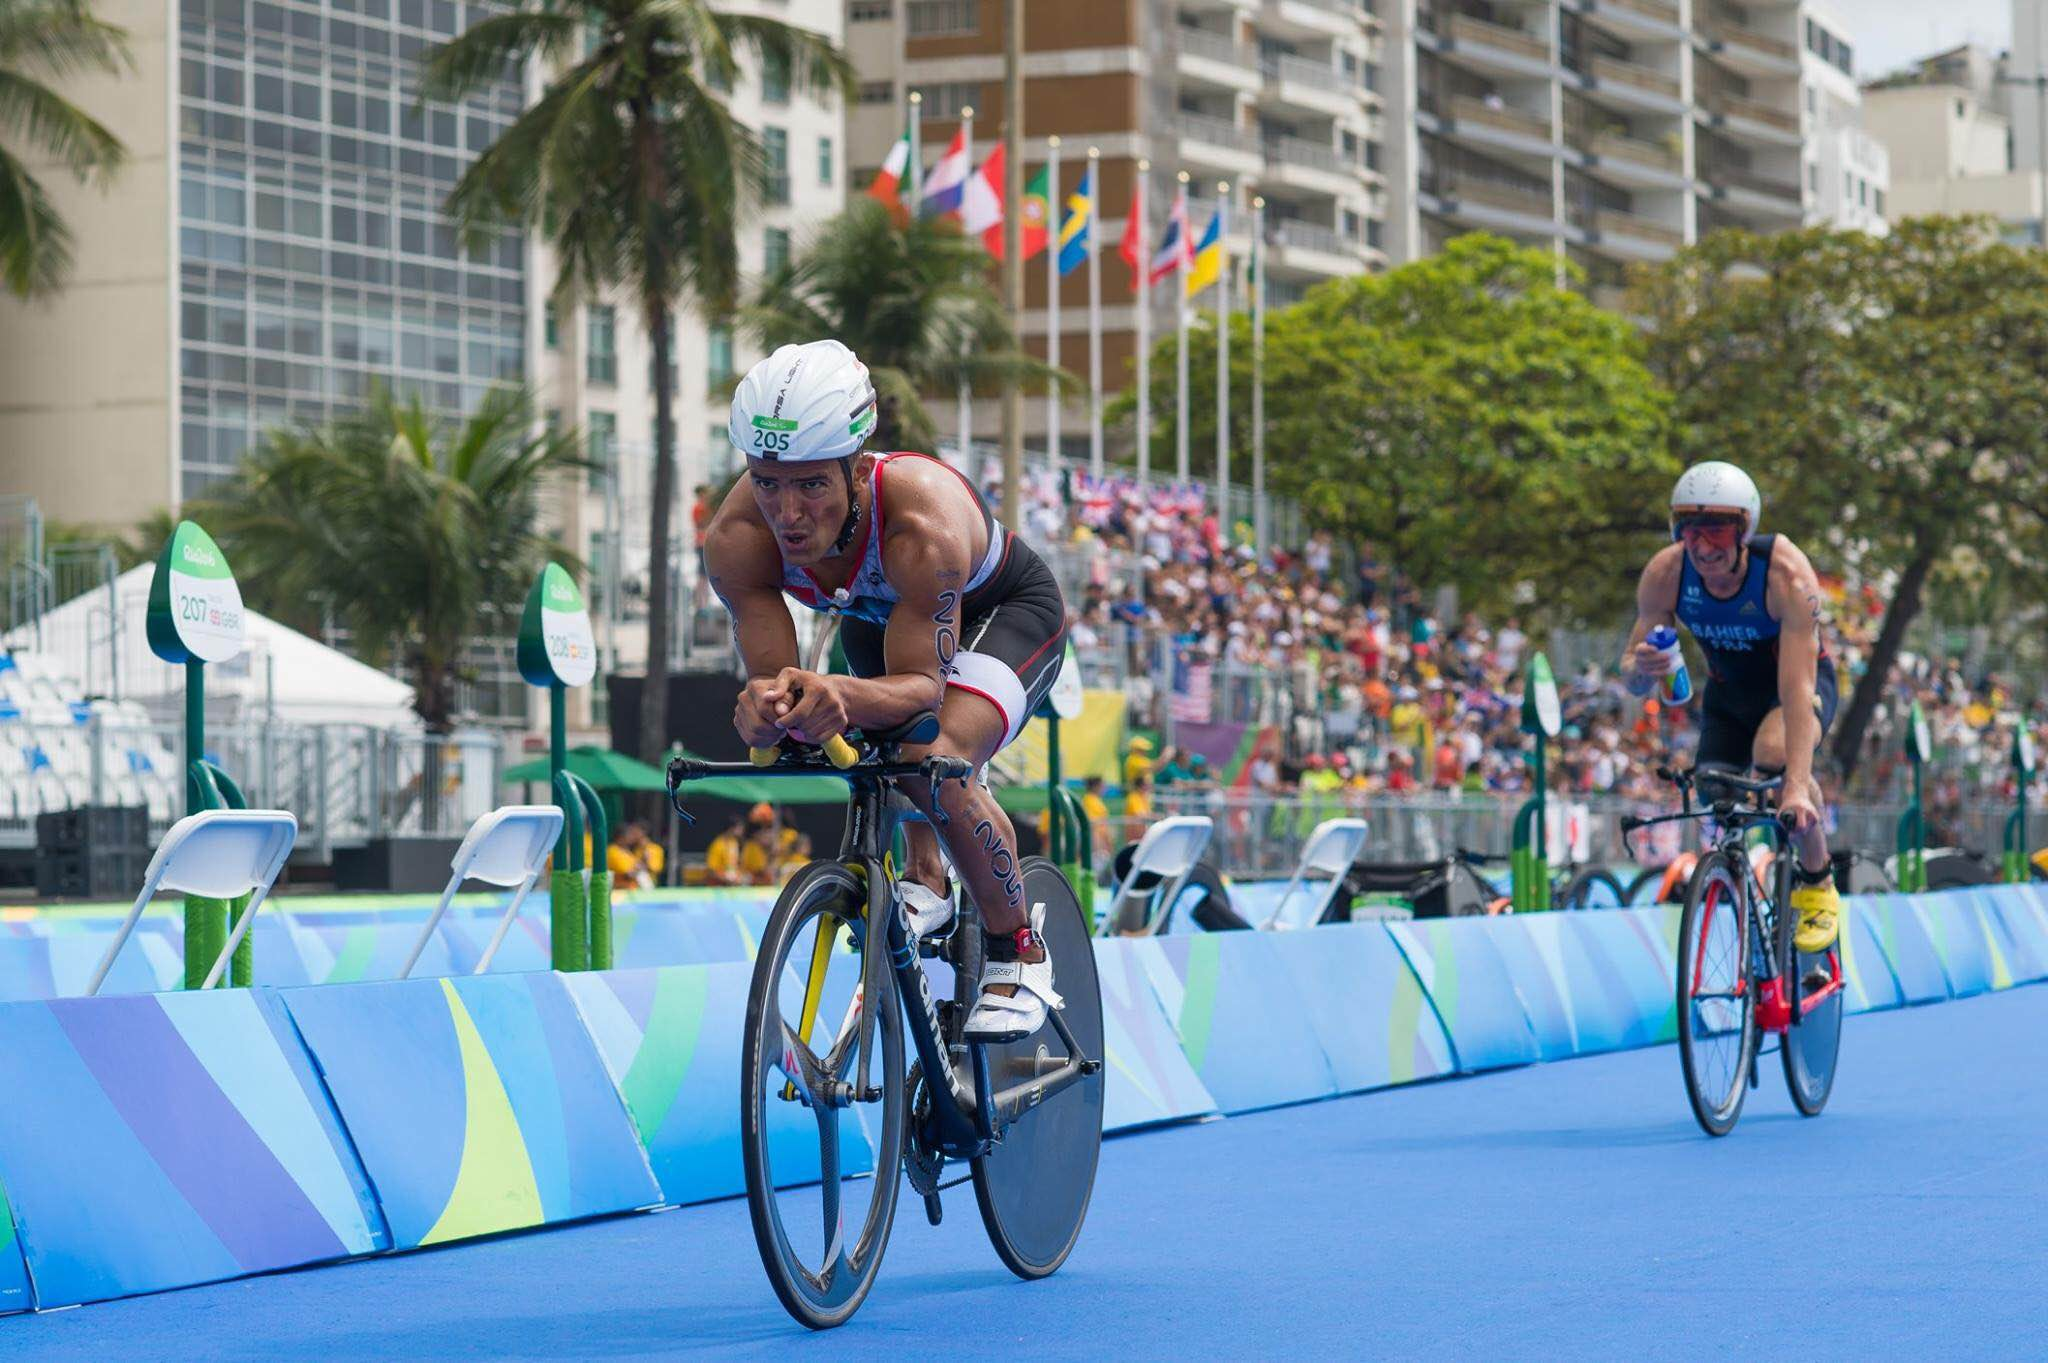 Mohamed on the bike during the Rio Olympic Games, 2016.